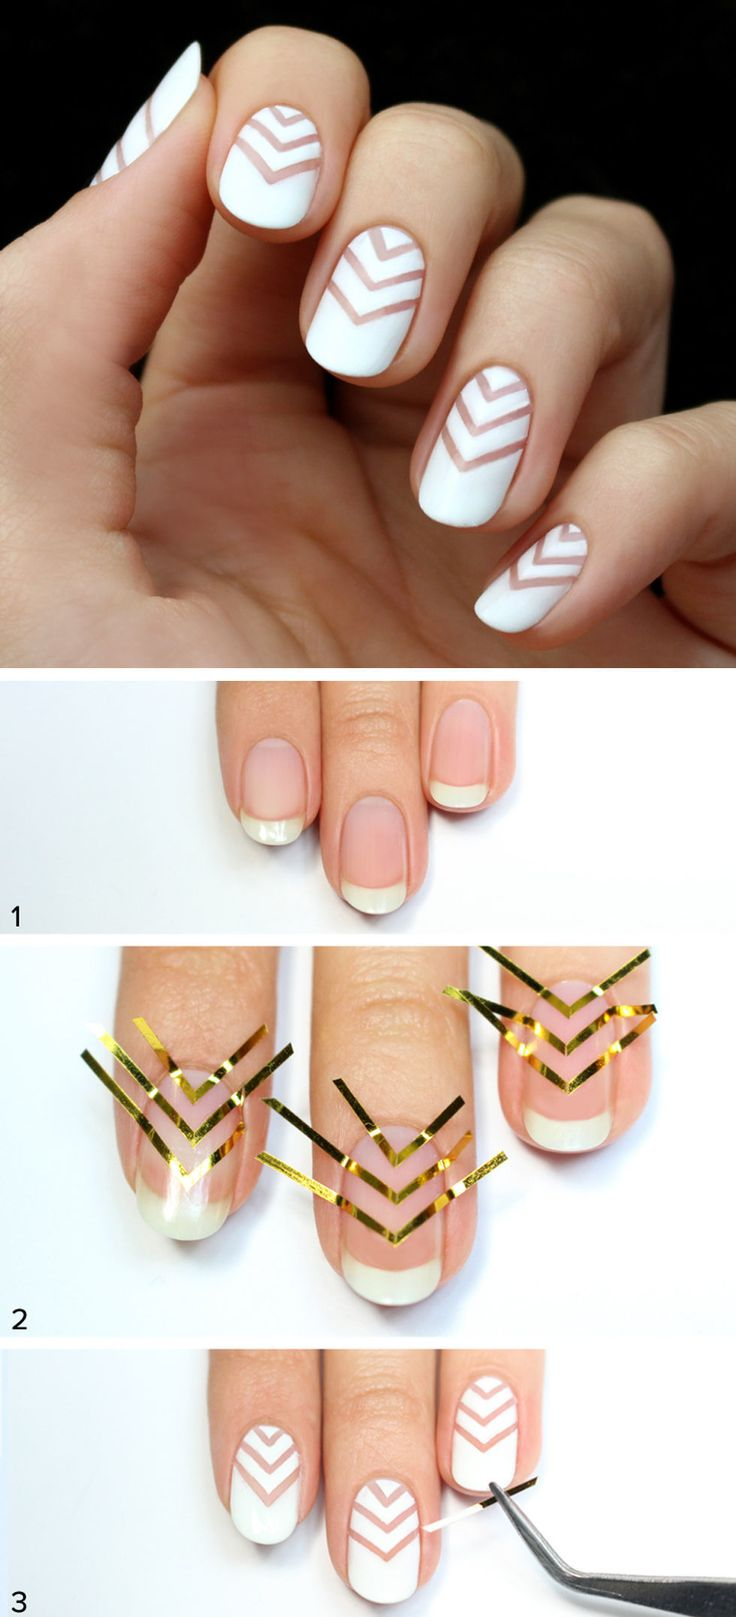 DIY NAIL HACKS | #SHOPTobi | Check Out TOBI.com for the latest fashion |